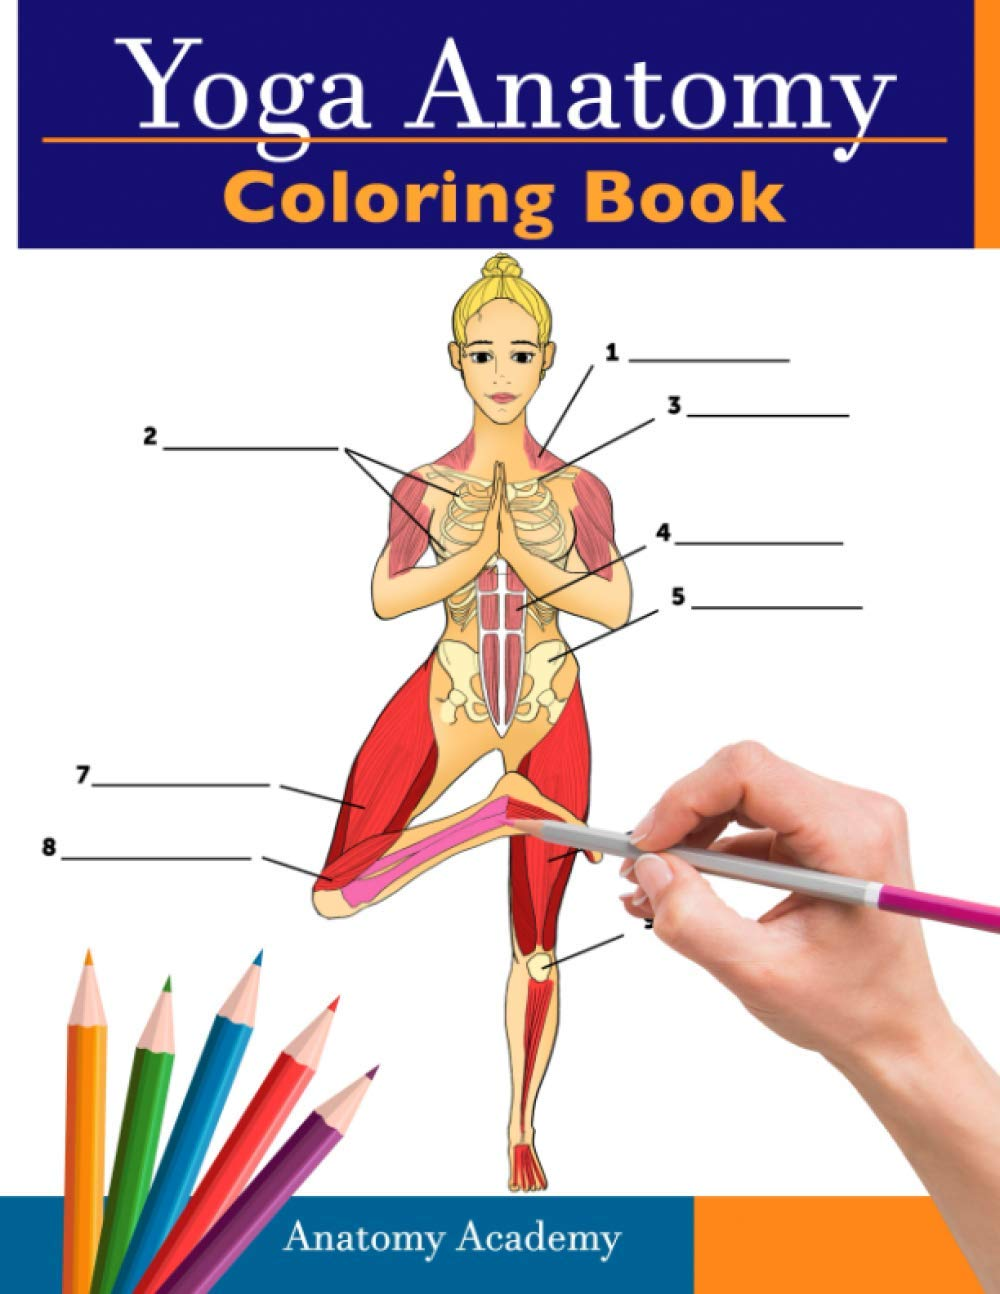 Yoga Anatomy Coloring Book: 3-in-1 Compilation | 150+ Incredibly Detailed Self-Test Beginner, Intermediate & Expert Yoga Poses Color workbook